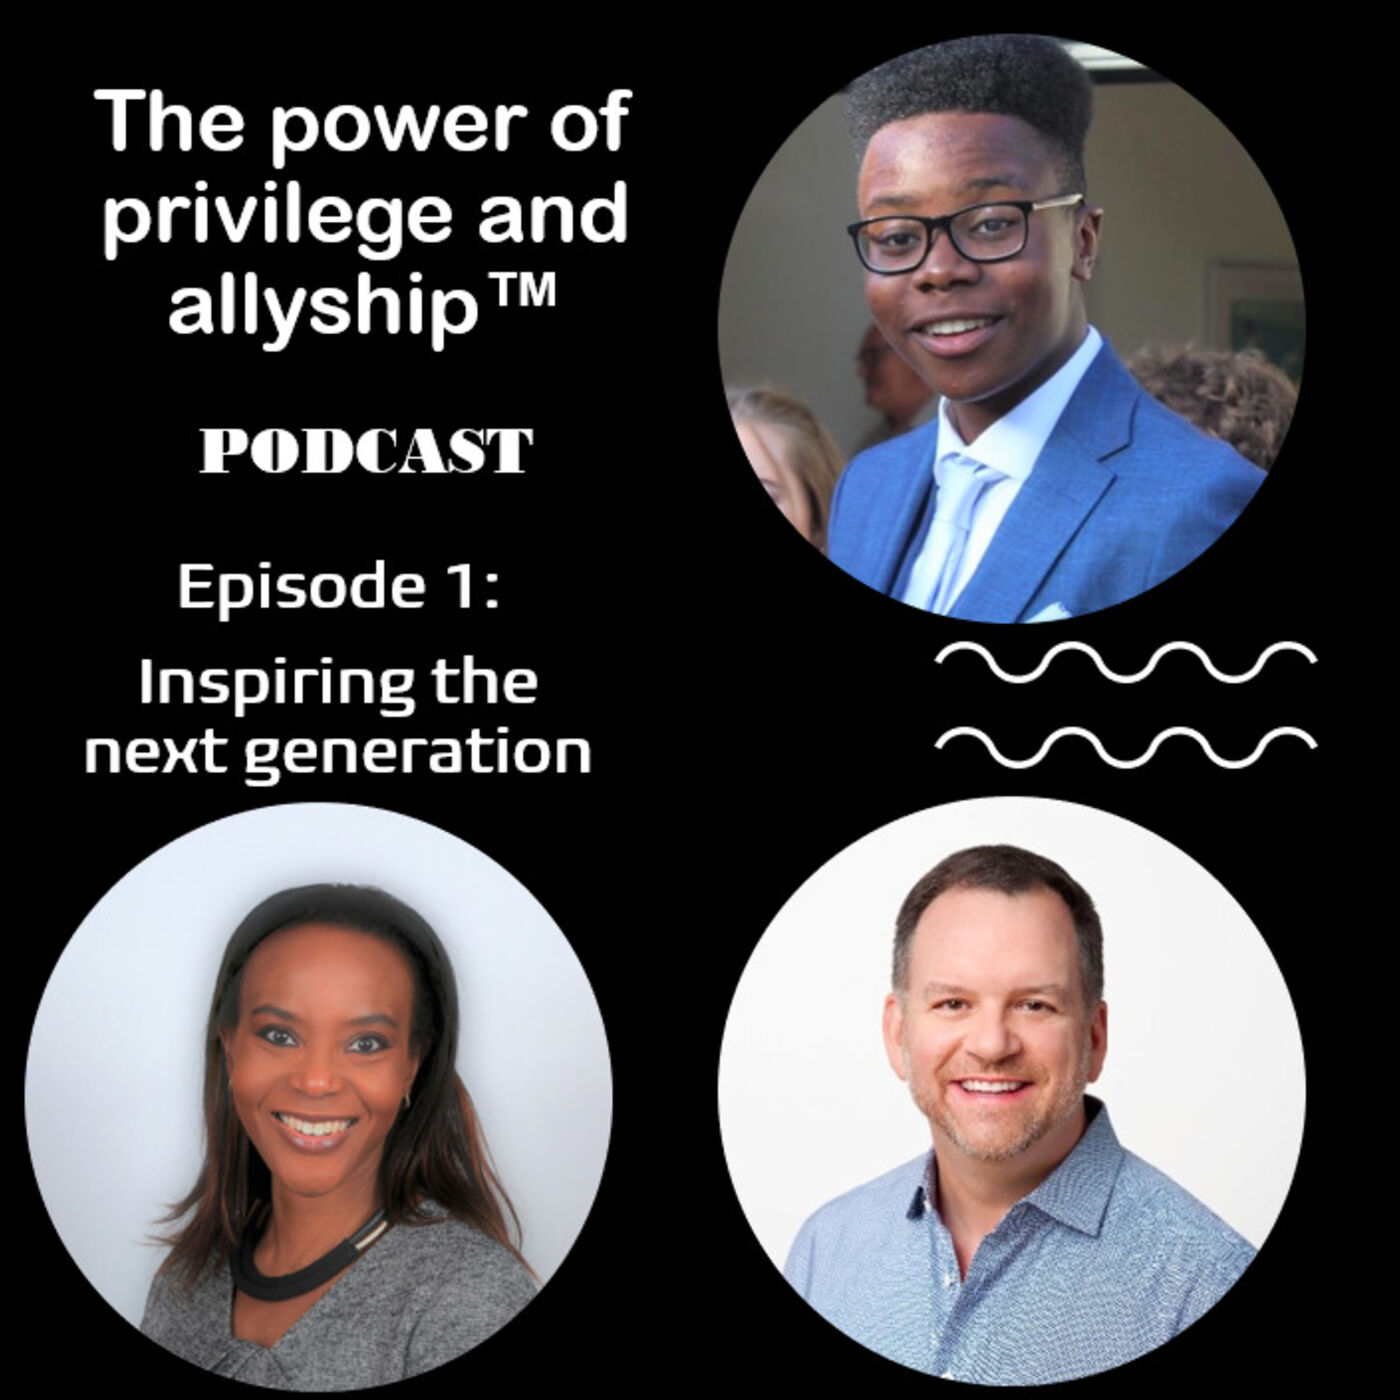 S1 Ep 1: Inspiring the next generation feat. Chuck Stephens and Max Abimbola